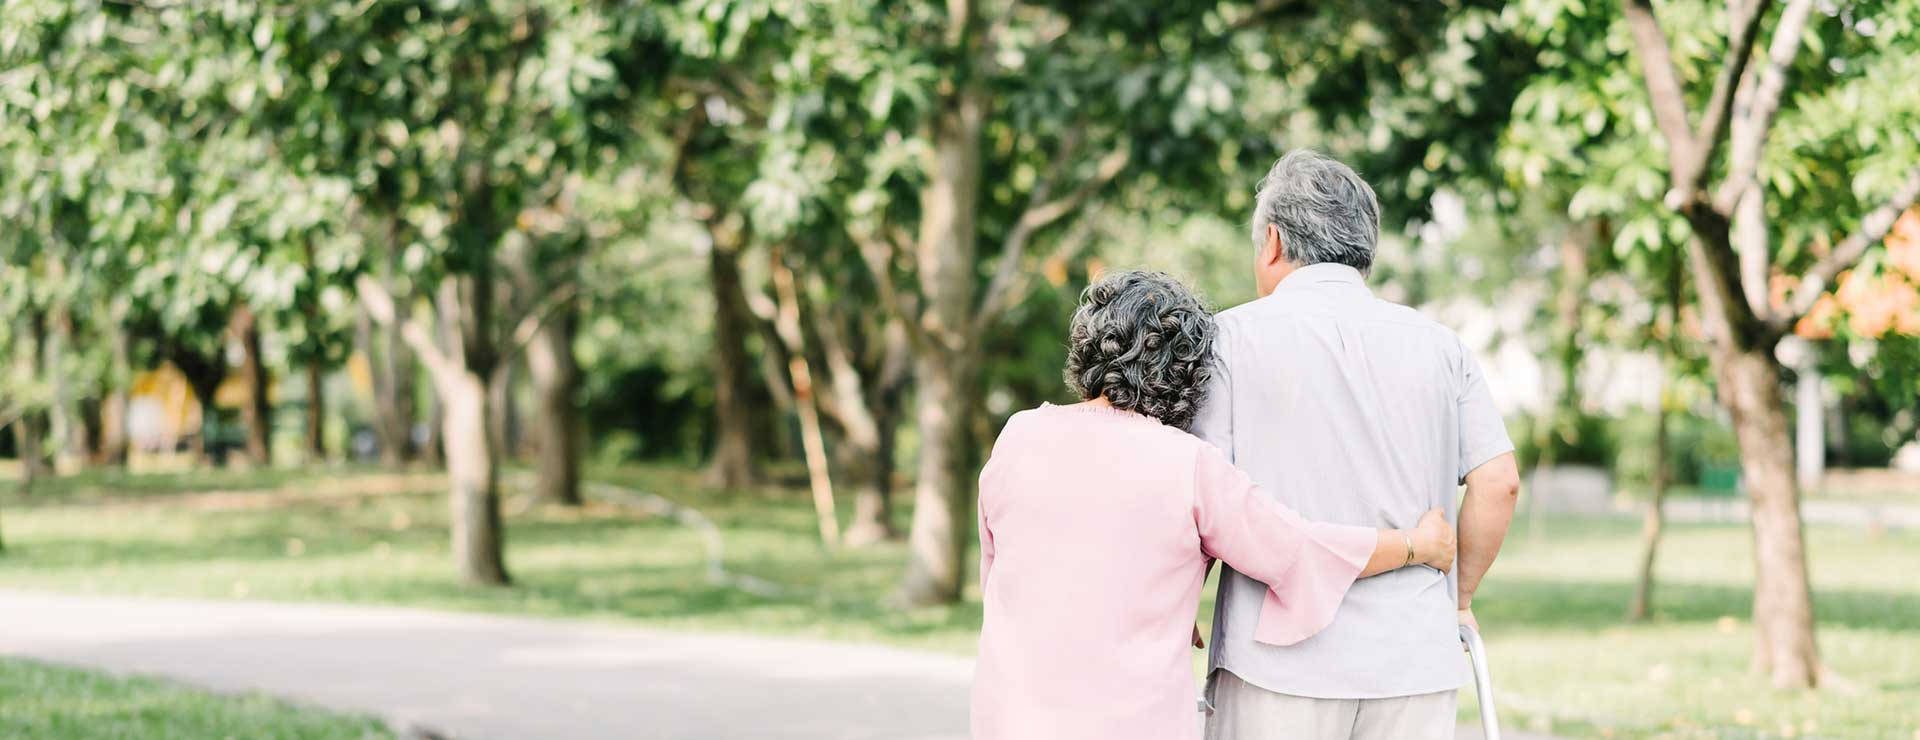 A senior couple walking in the park